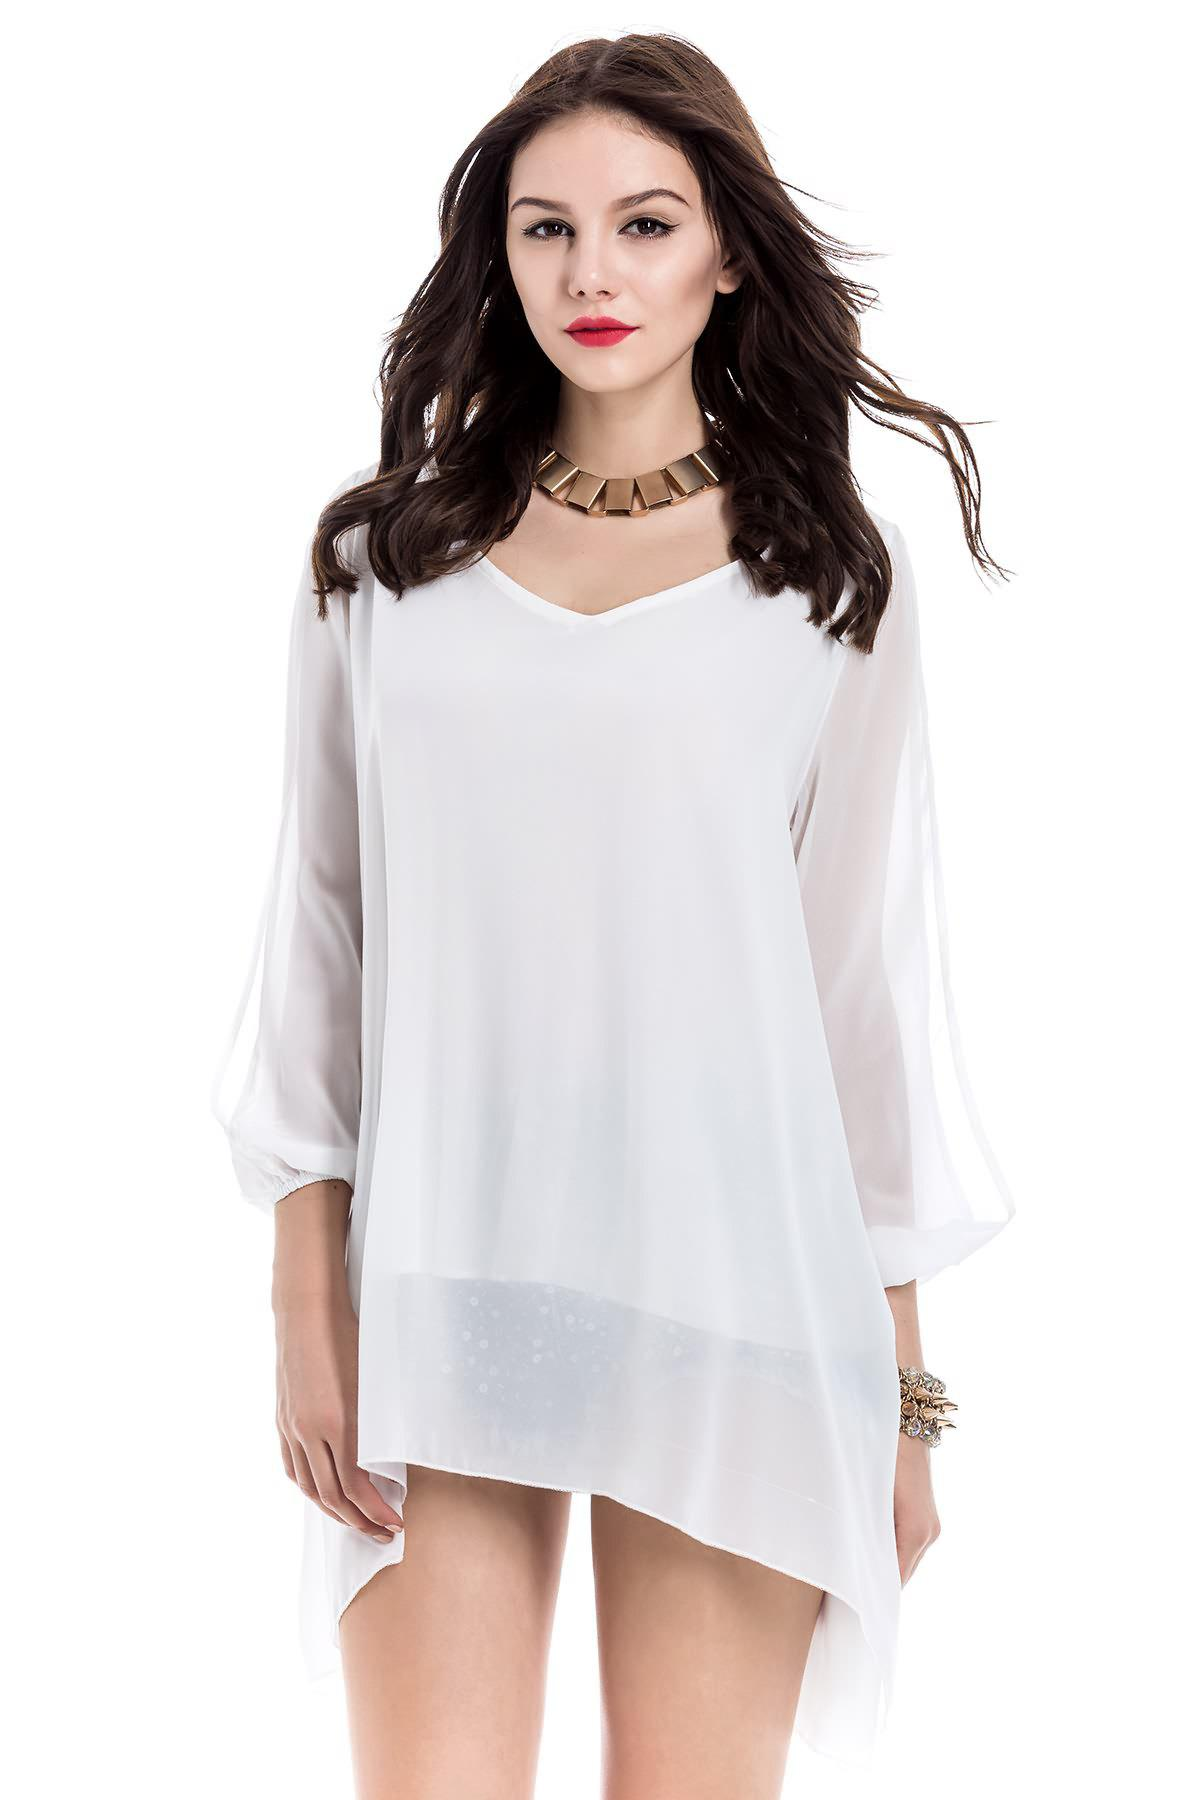 Hot Long Sleeve Chiffon Beach Shift Dress